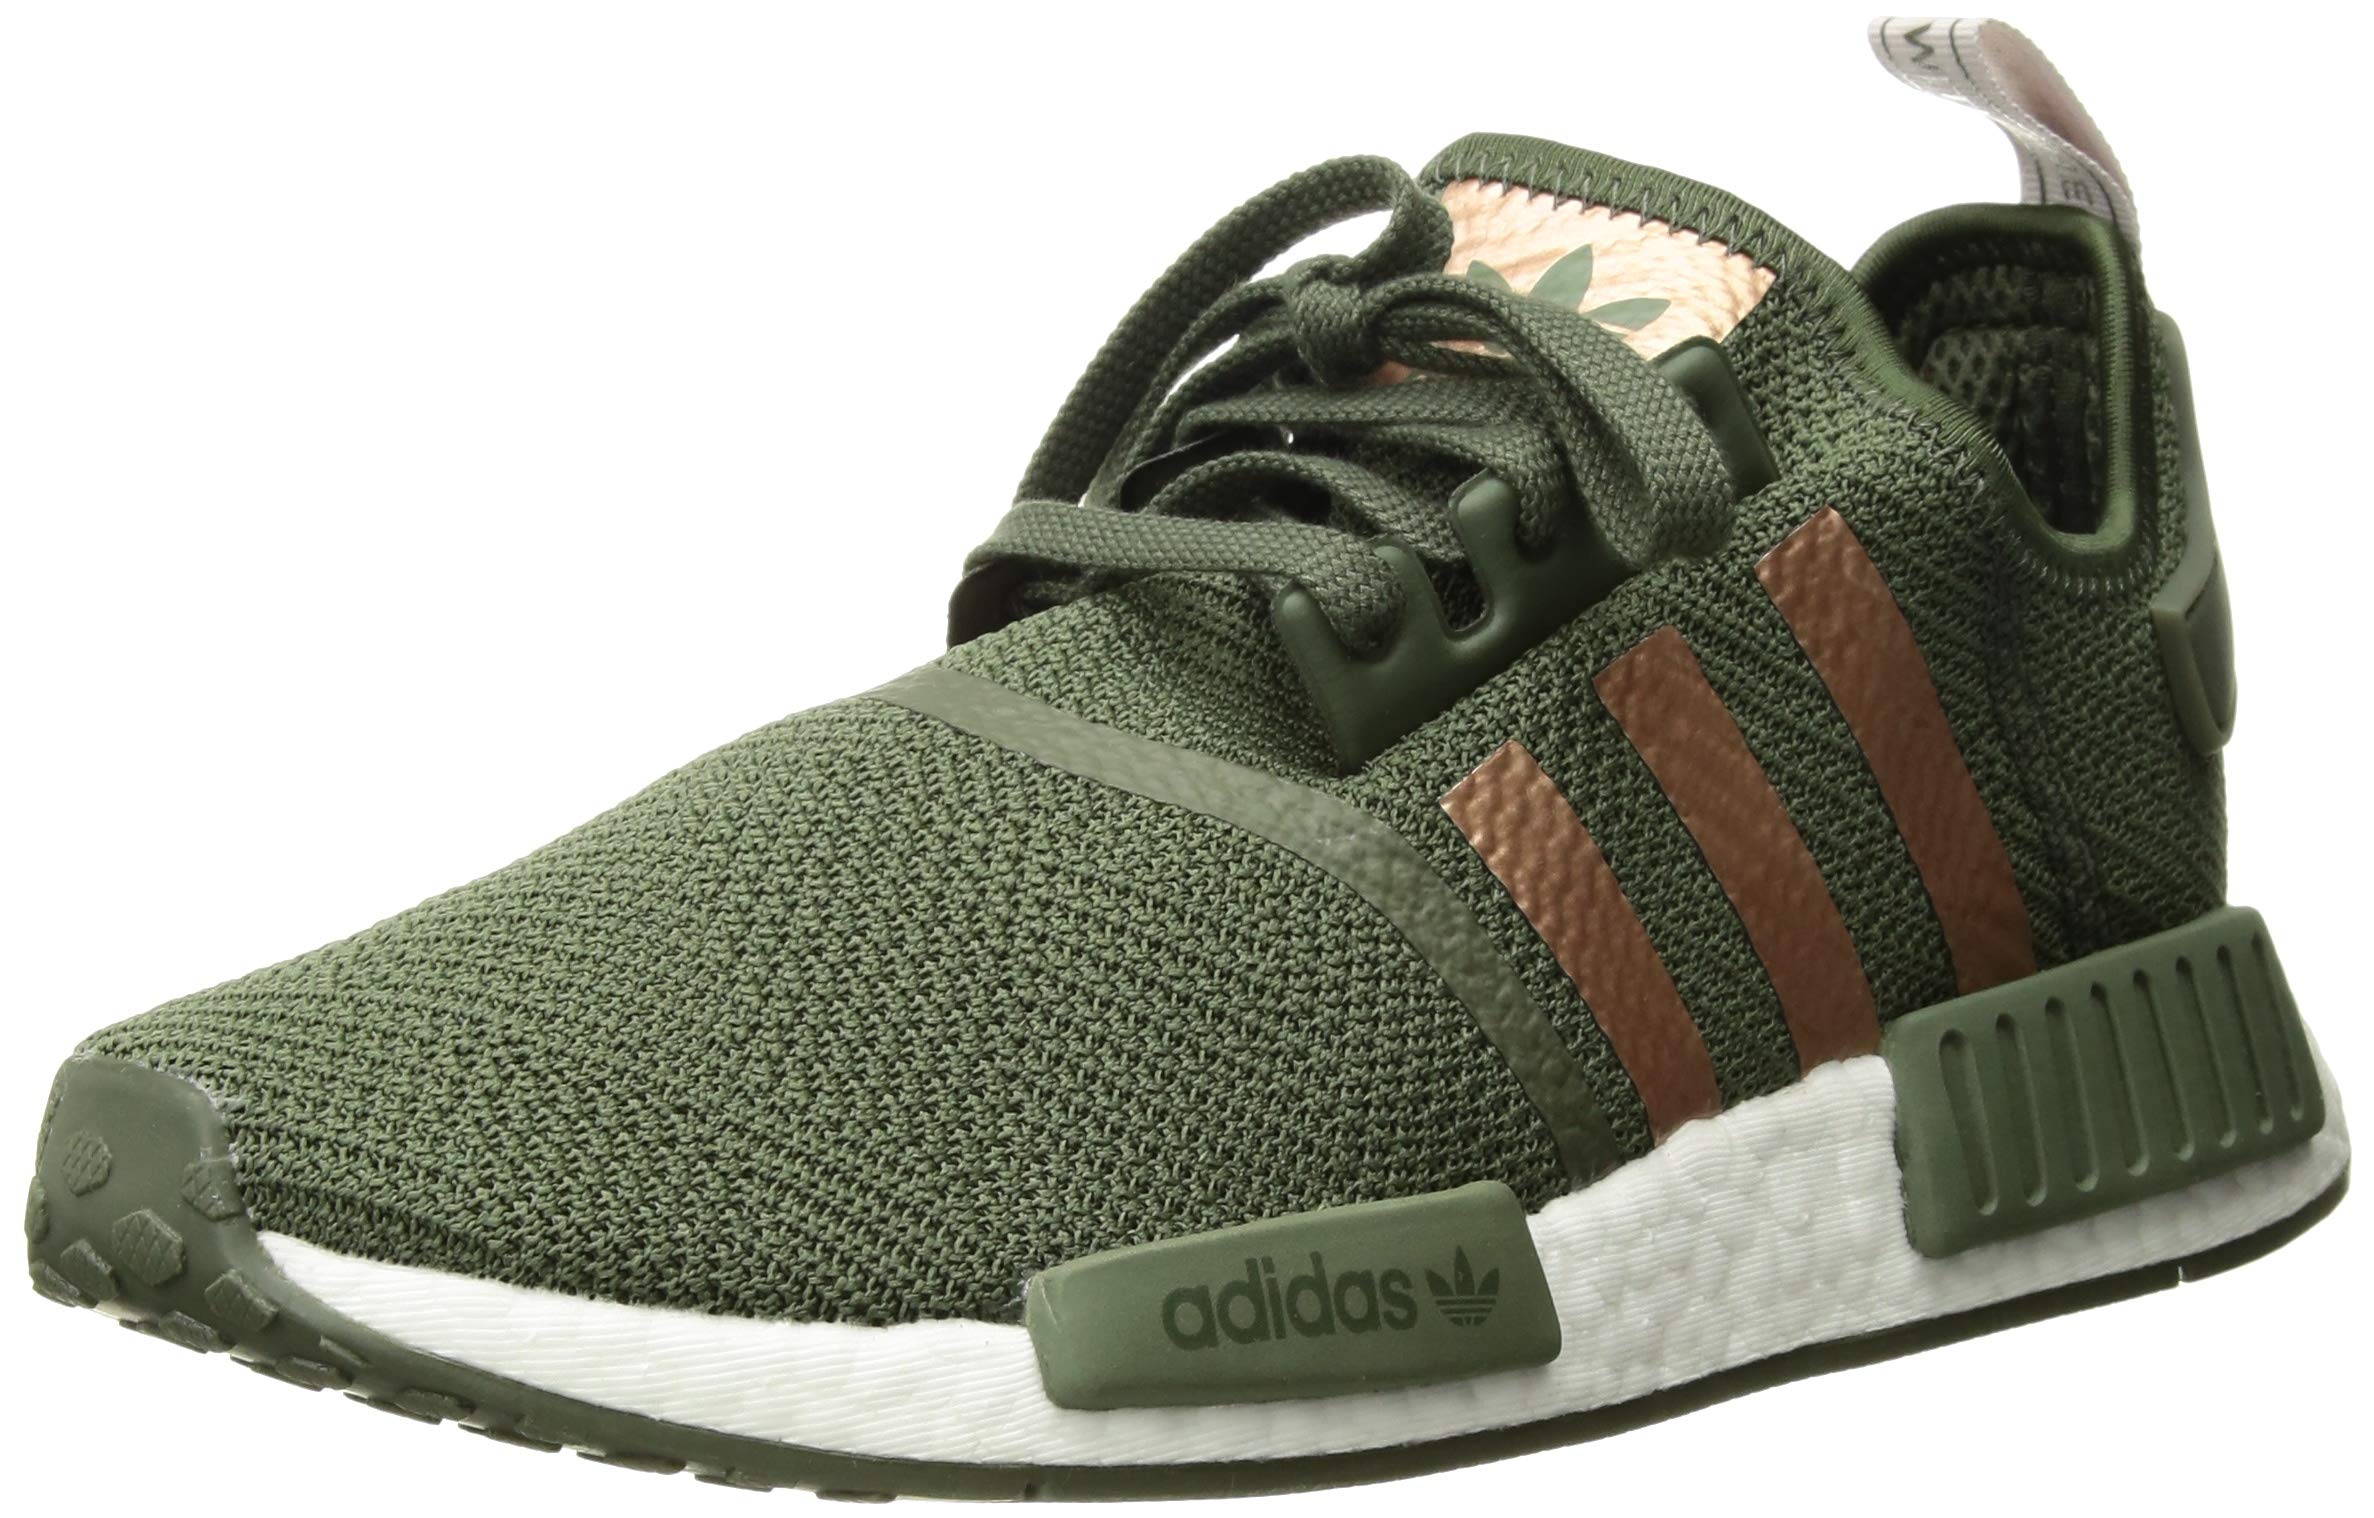 adidas Originals Women's NMD_R1, Green/Super Collegiate/ice Purple, 5 M US